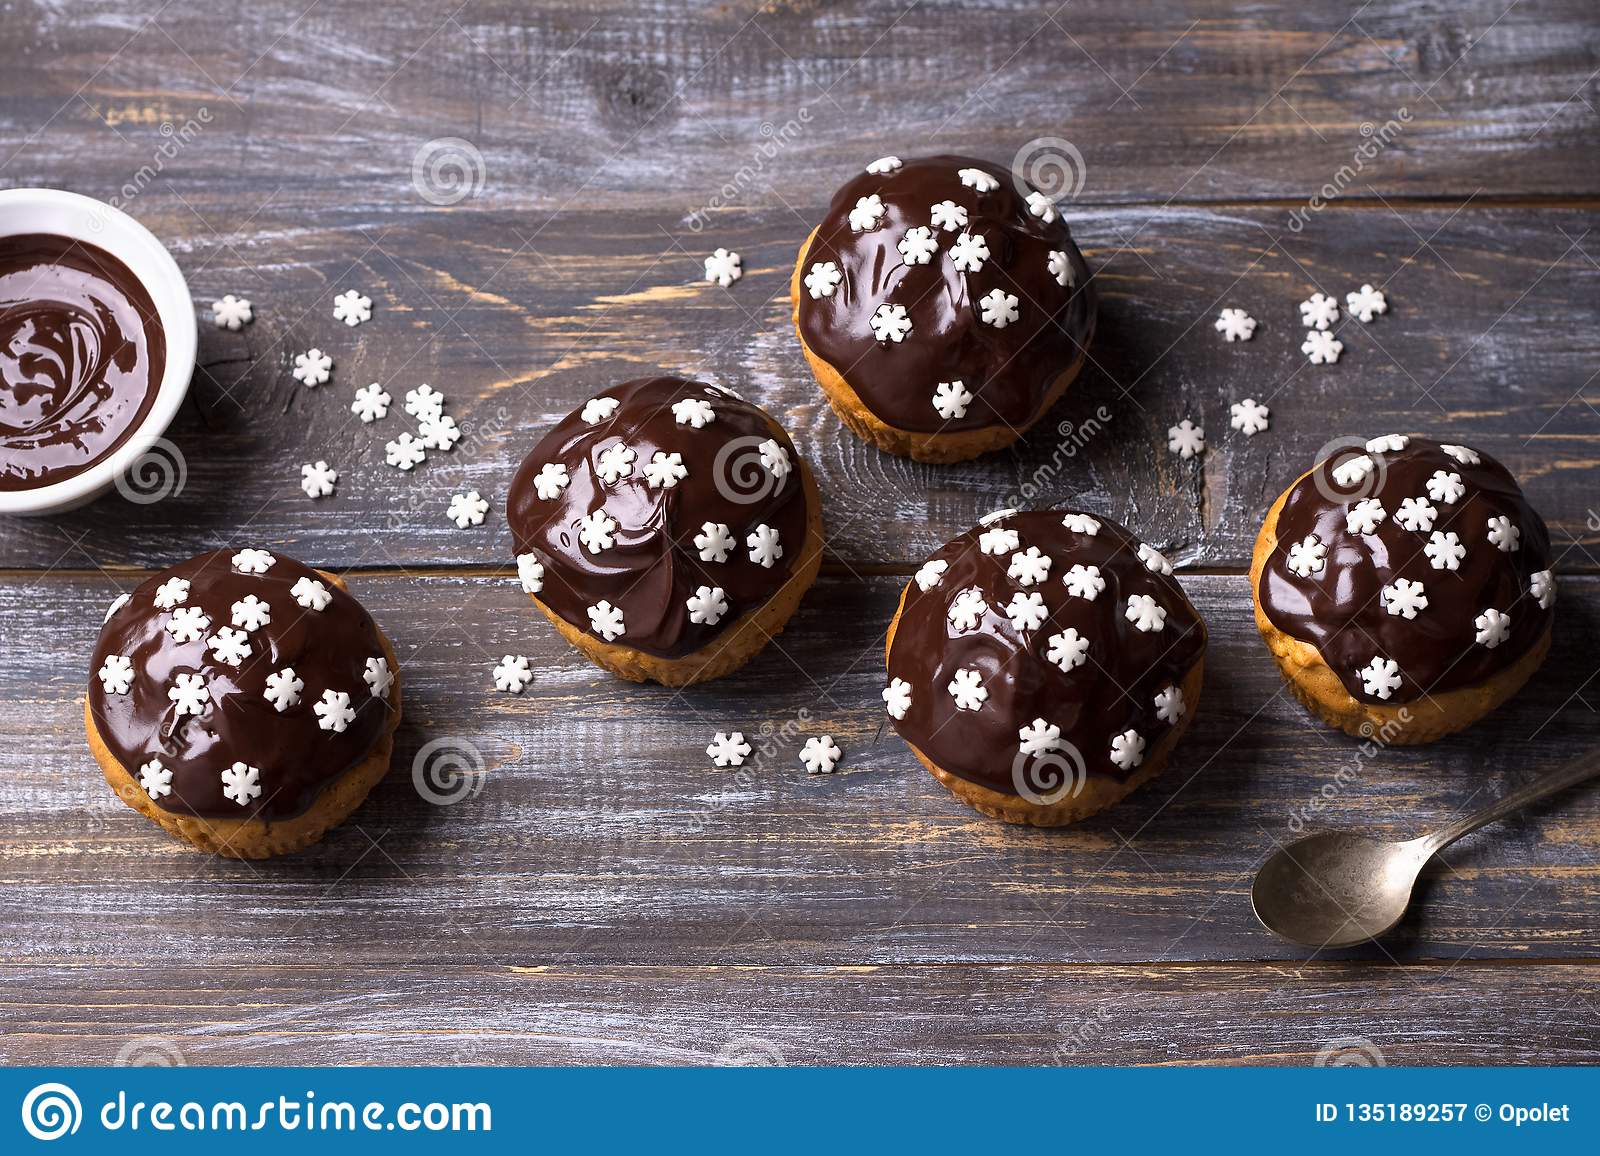 Spicy pumpkin muffins with nuts, decorated with chocolate glaze and sugar snowflakes under the Christmas tree on a wooden table